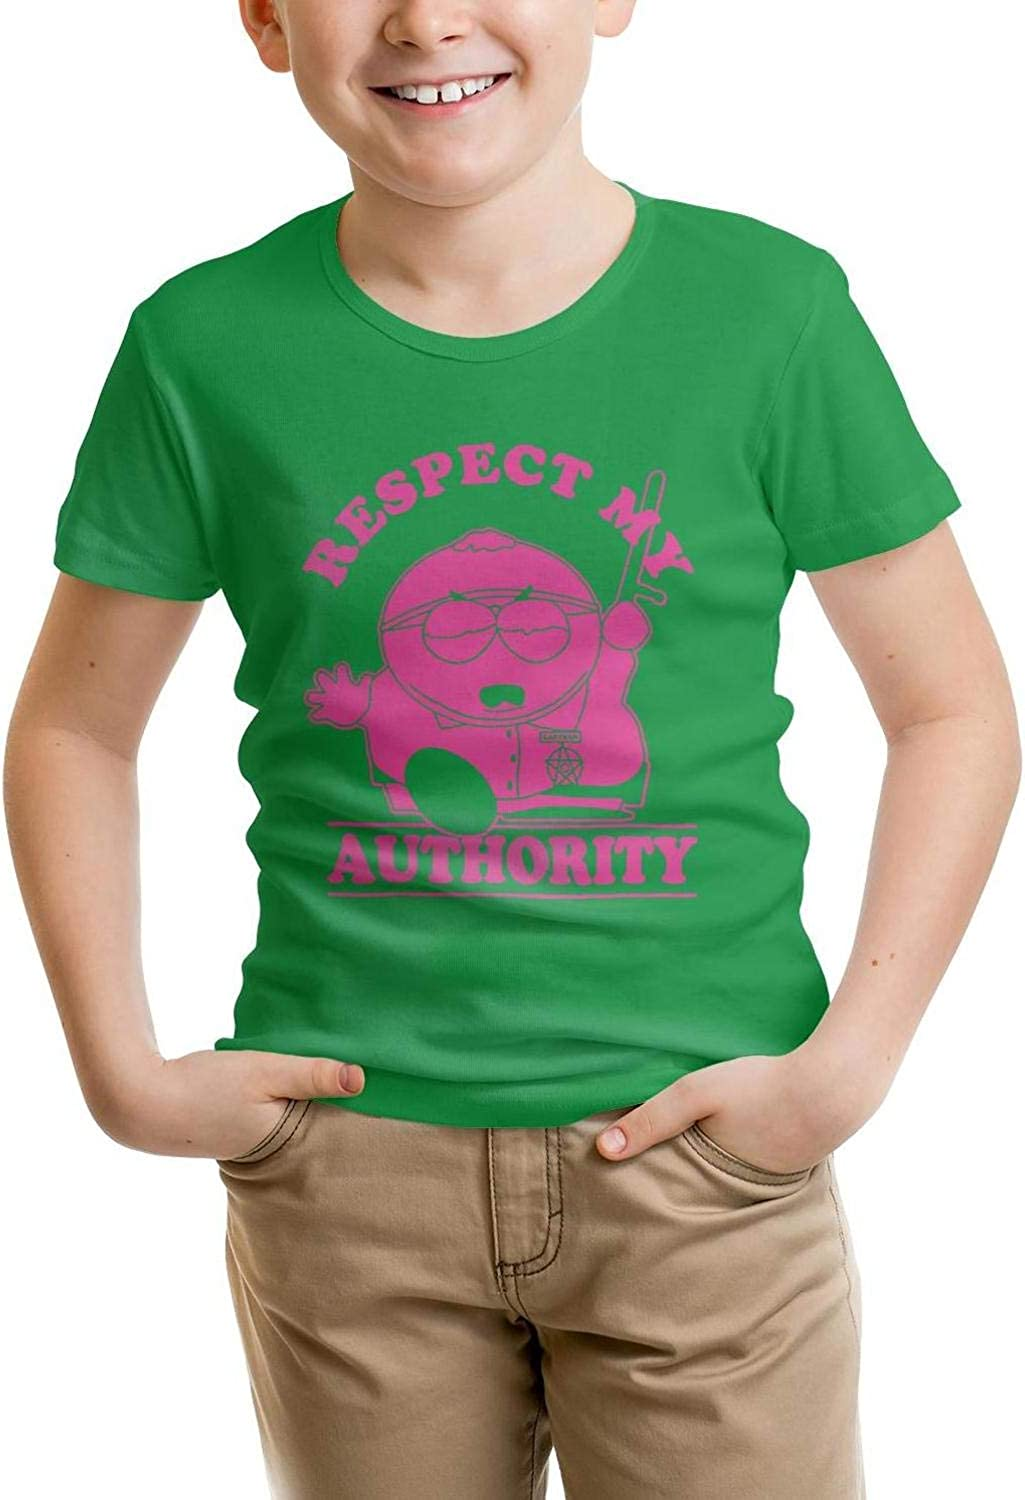 O-Neck T-Shirts LunchBaggg Comfortable Toddler BoysT Shirts for Youth South-Park-Respect-My-Authority